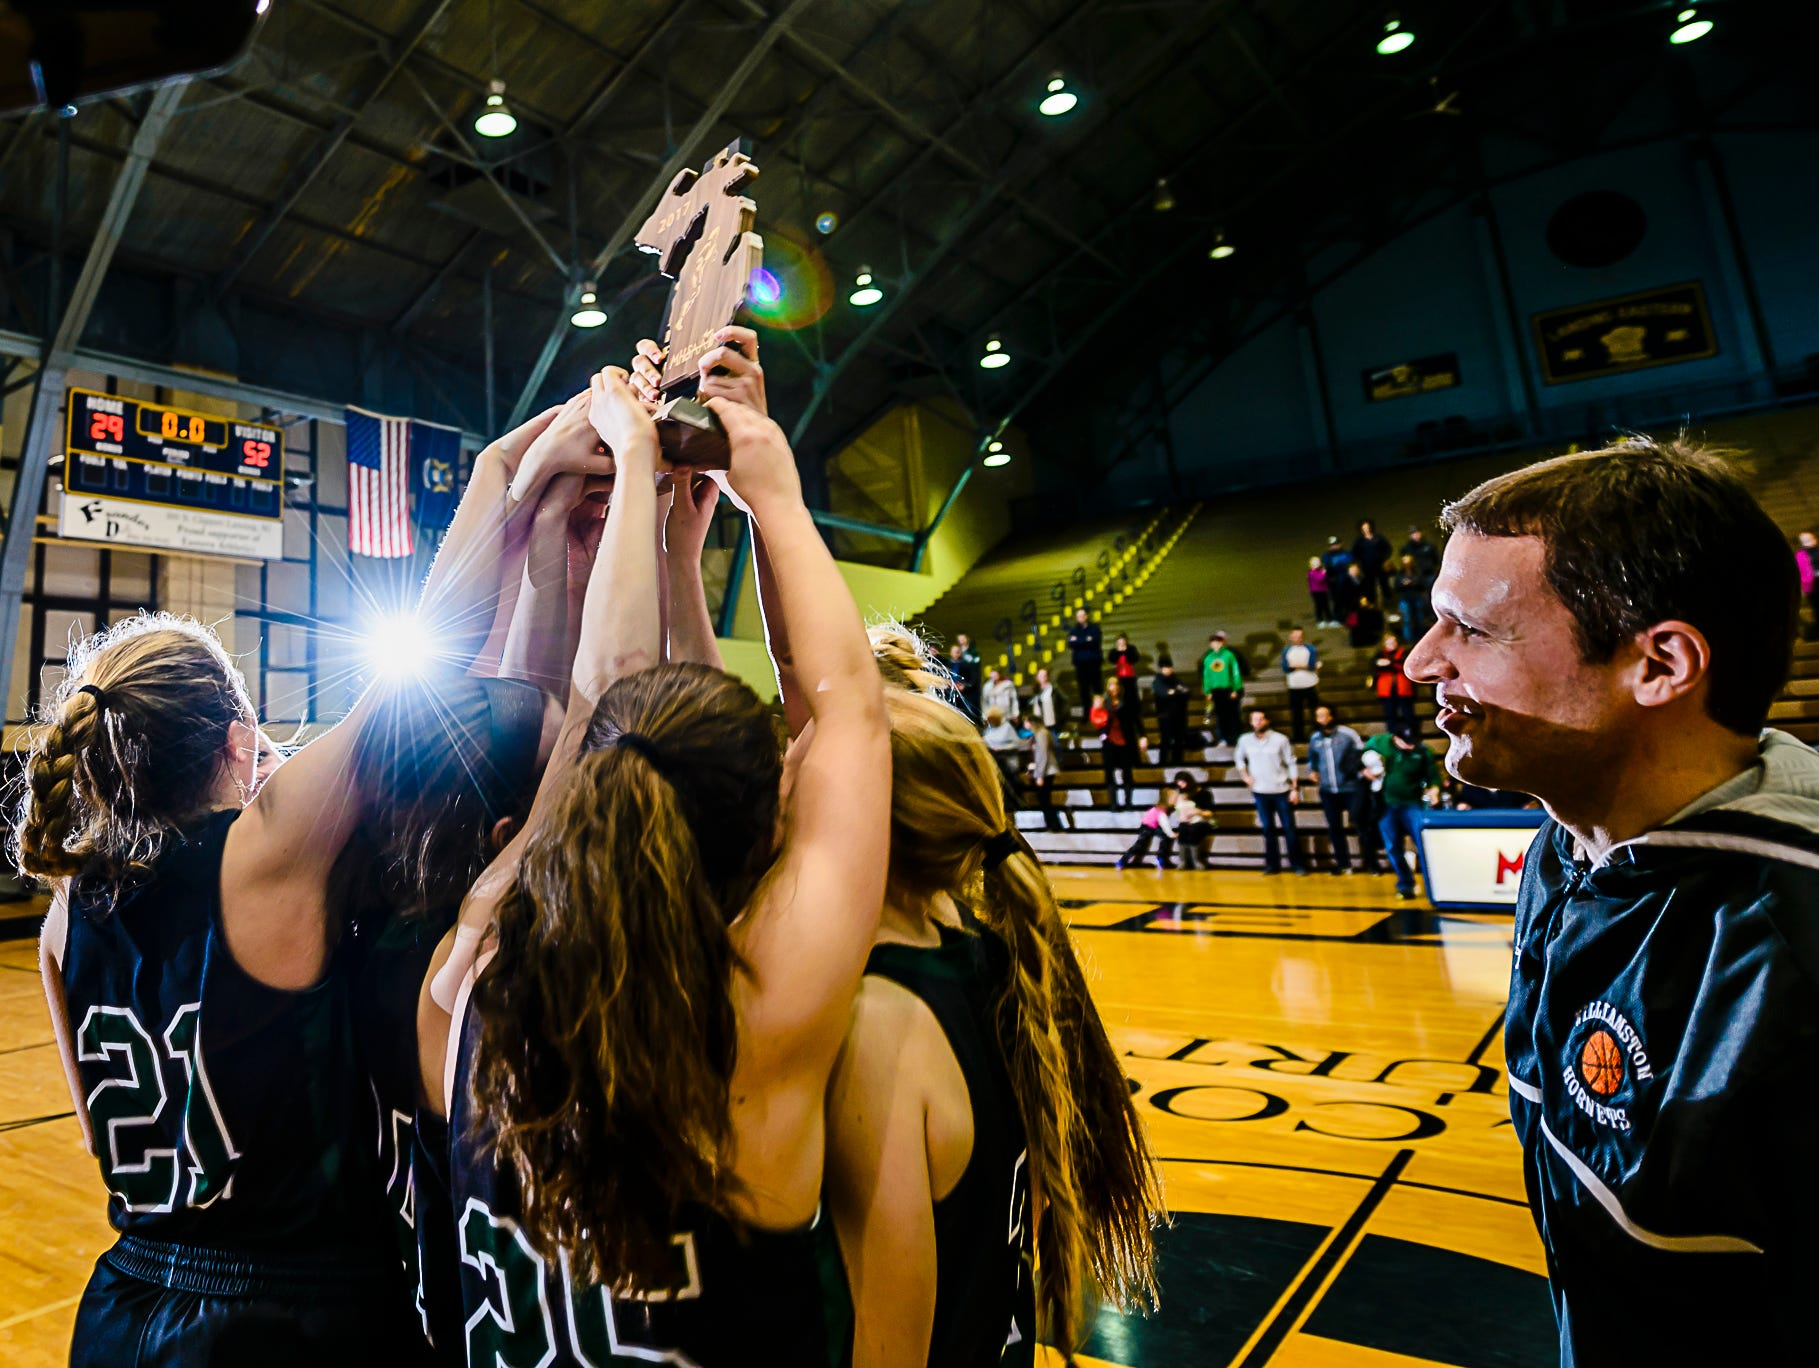 The Williamston girls basketball team lifts the Class B regional championship trophy as head coach Pete Cool ,right, looks on after their win over Portland Thursday March 9, 2017 at Don Johnson Fieldhouse in Lansing. KEVIN W. FOWLER PHOTO